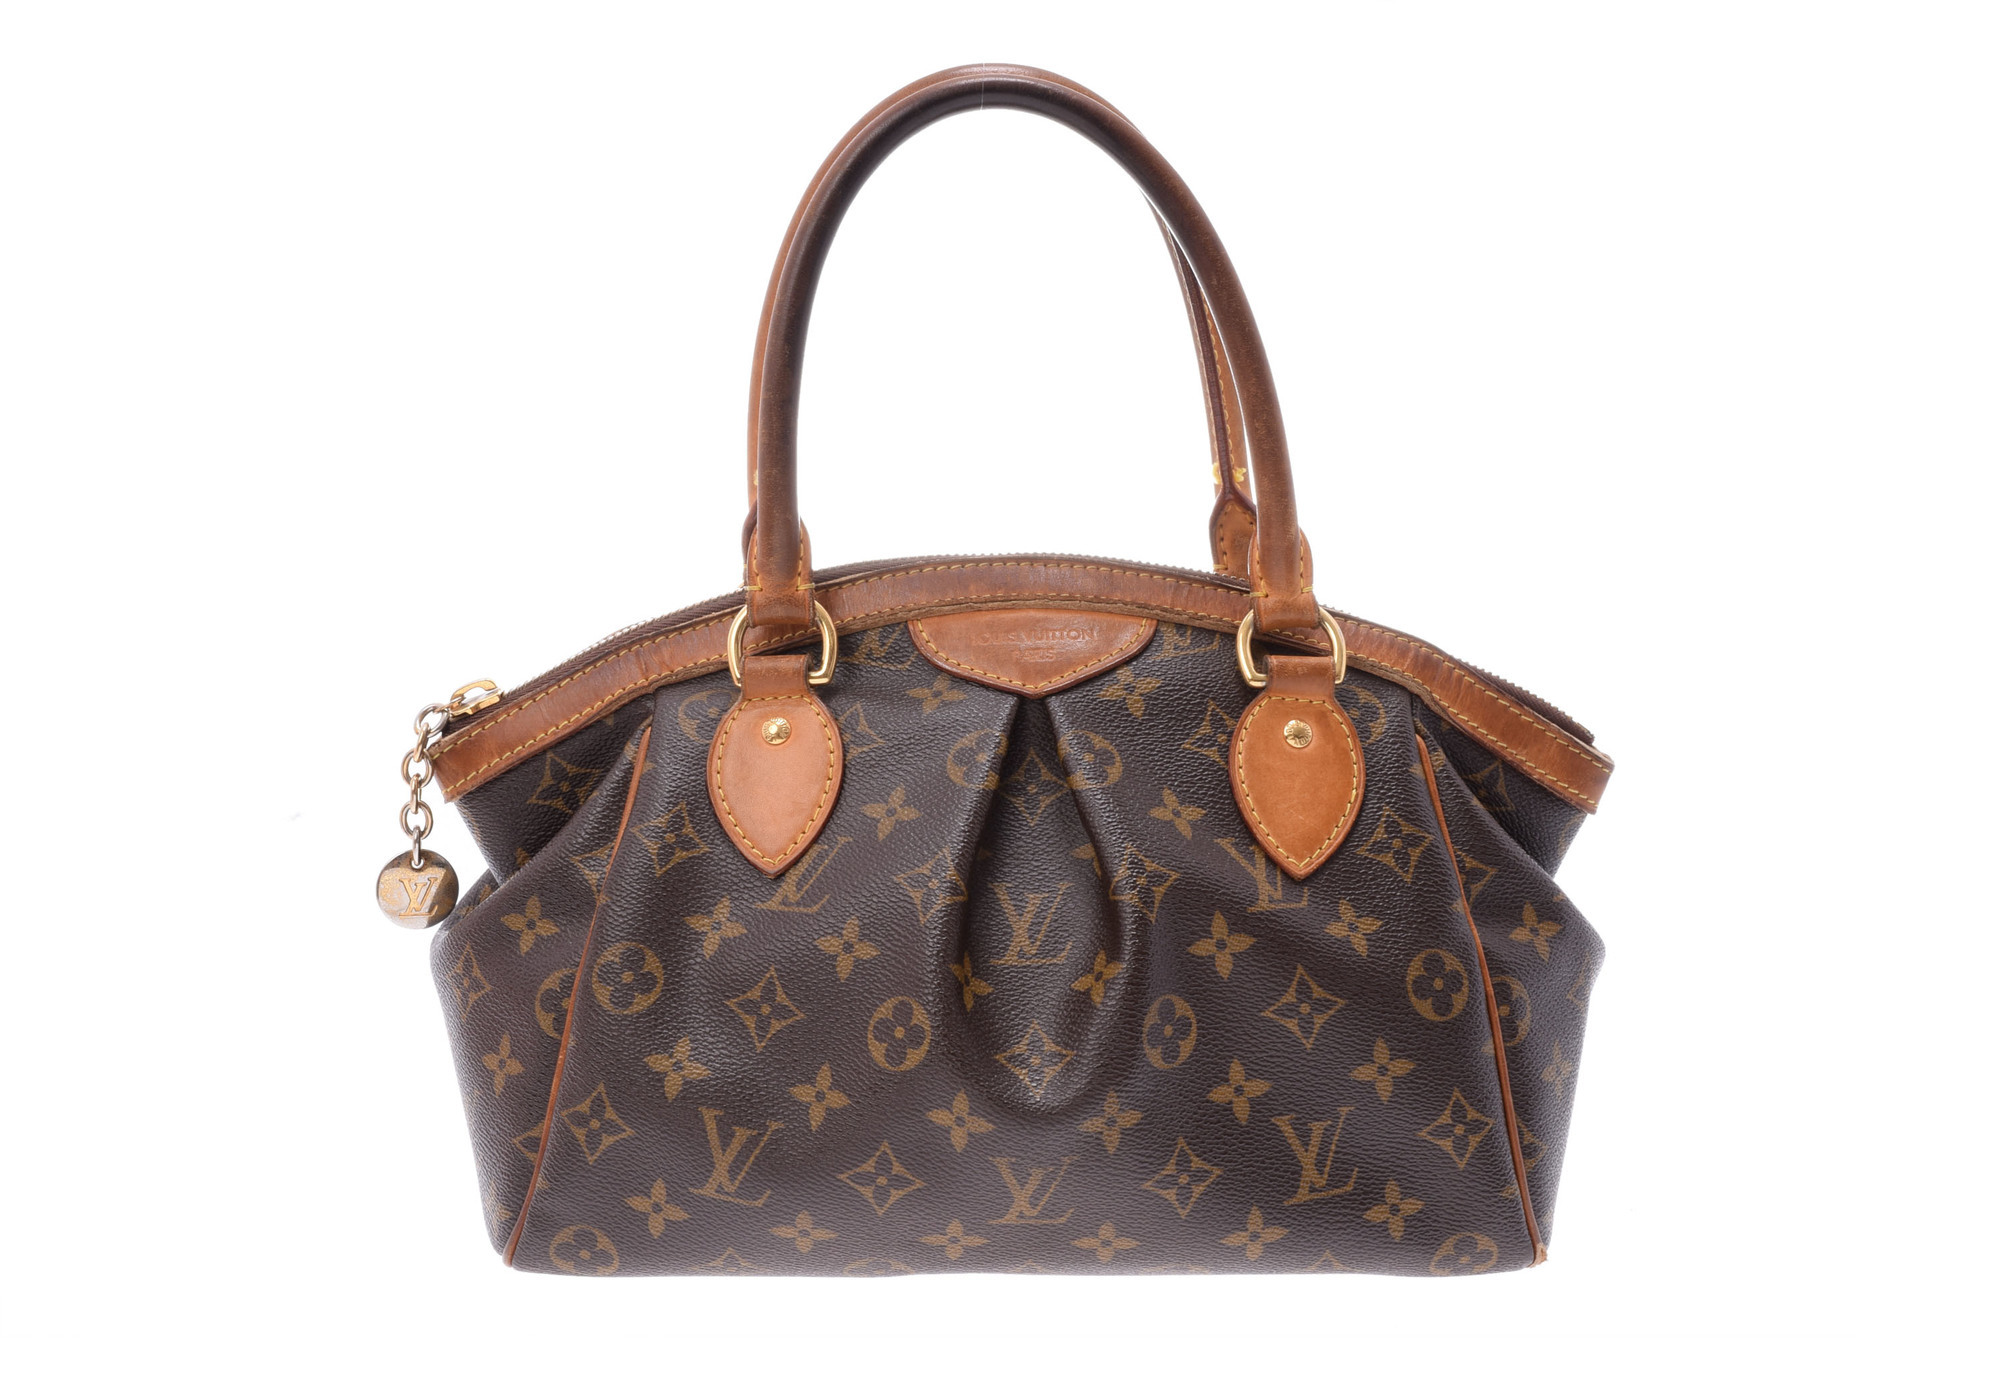 Louis Vuitton Tivoli Vs Palermo Details About Authentic Louis Vuitton Monogram Tivoli Pm M 40143 Bag 800000074155000